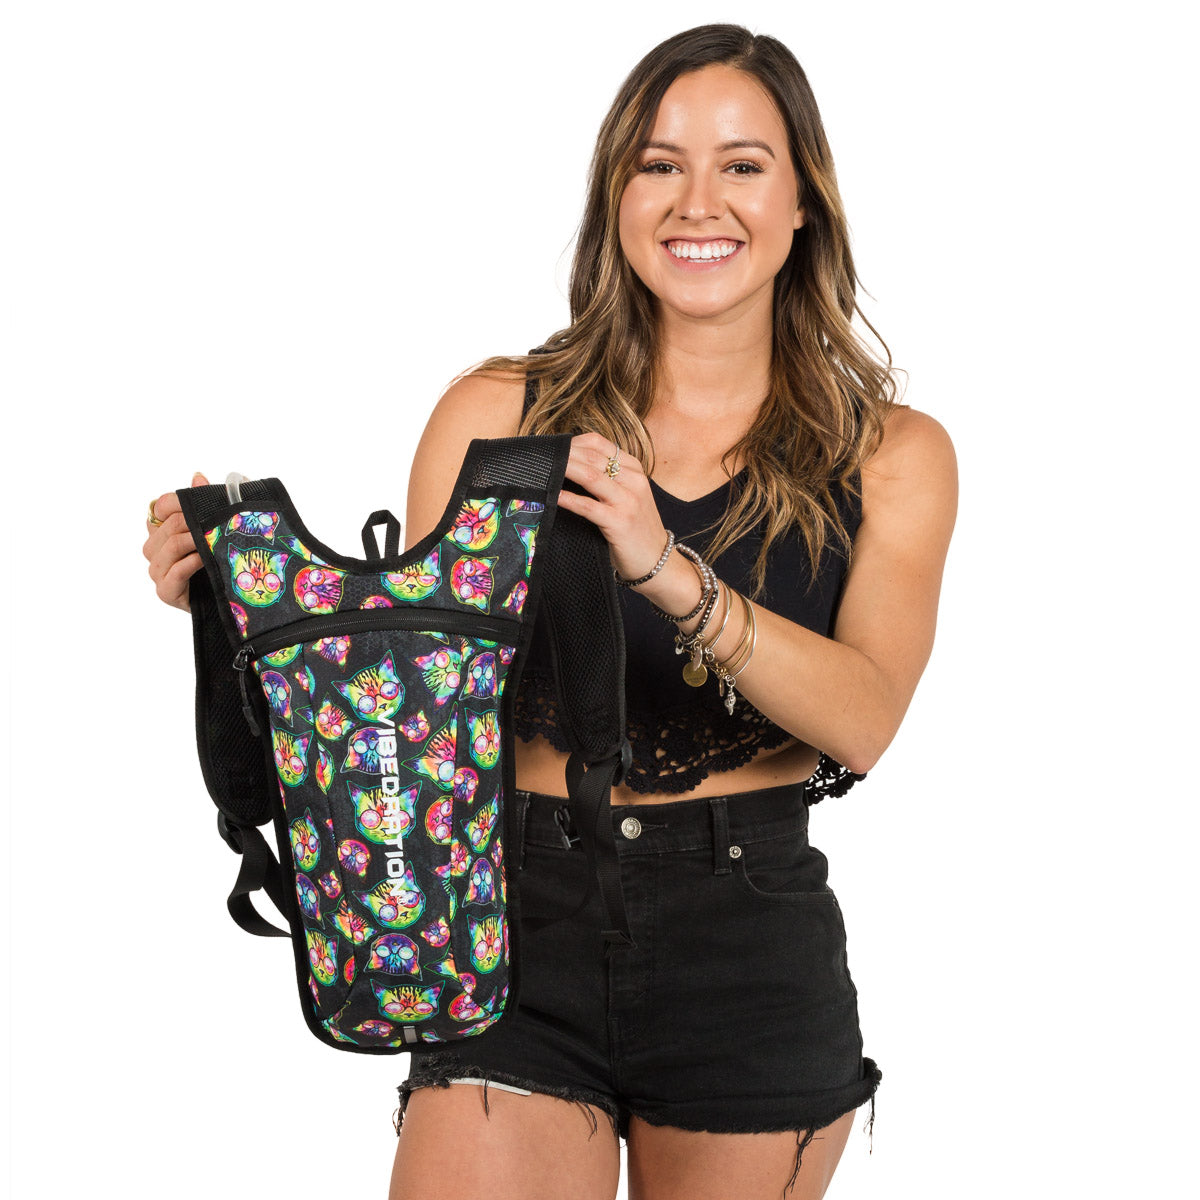 Cat Hydration Pack for Raves and Festivals